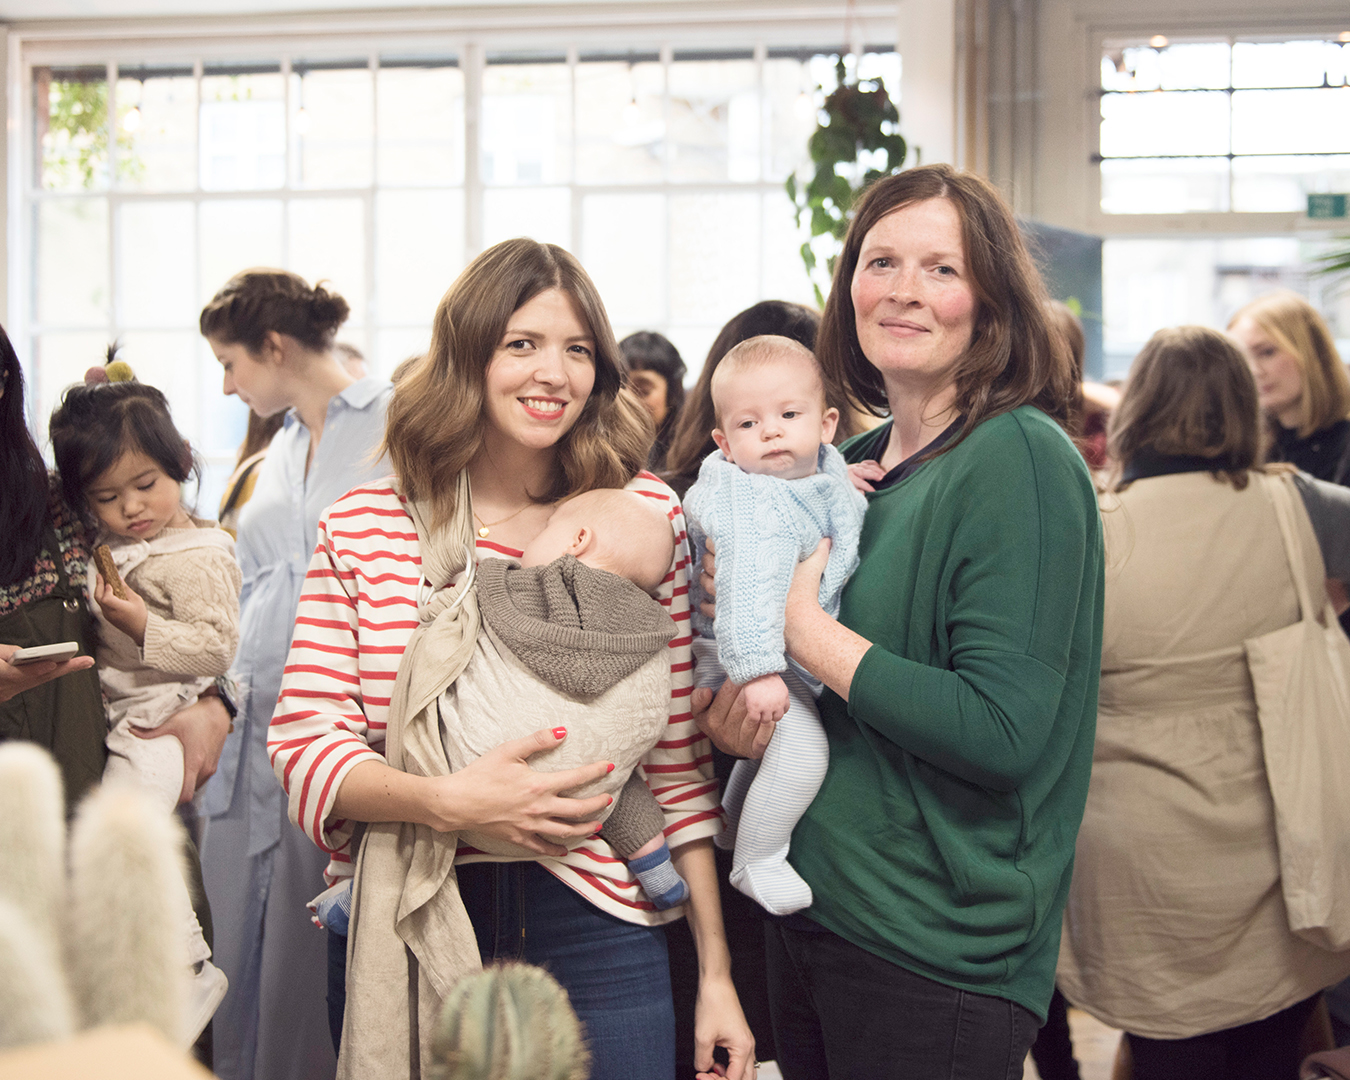 nancy-straughan-meet-up-networking-event-grounded-creatives.jpg